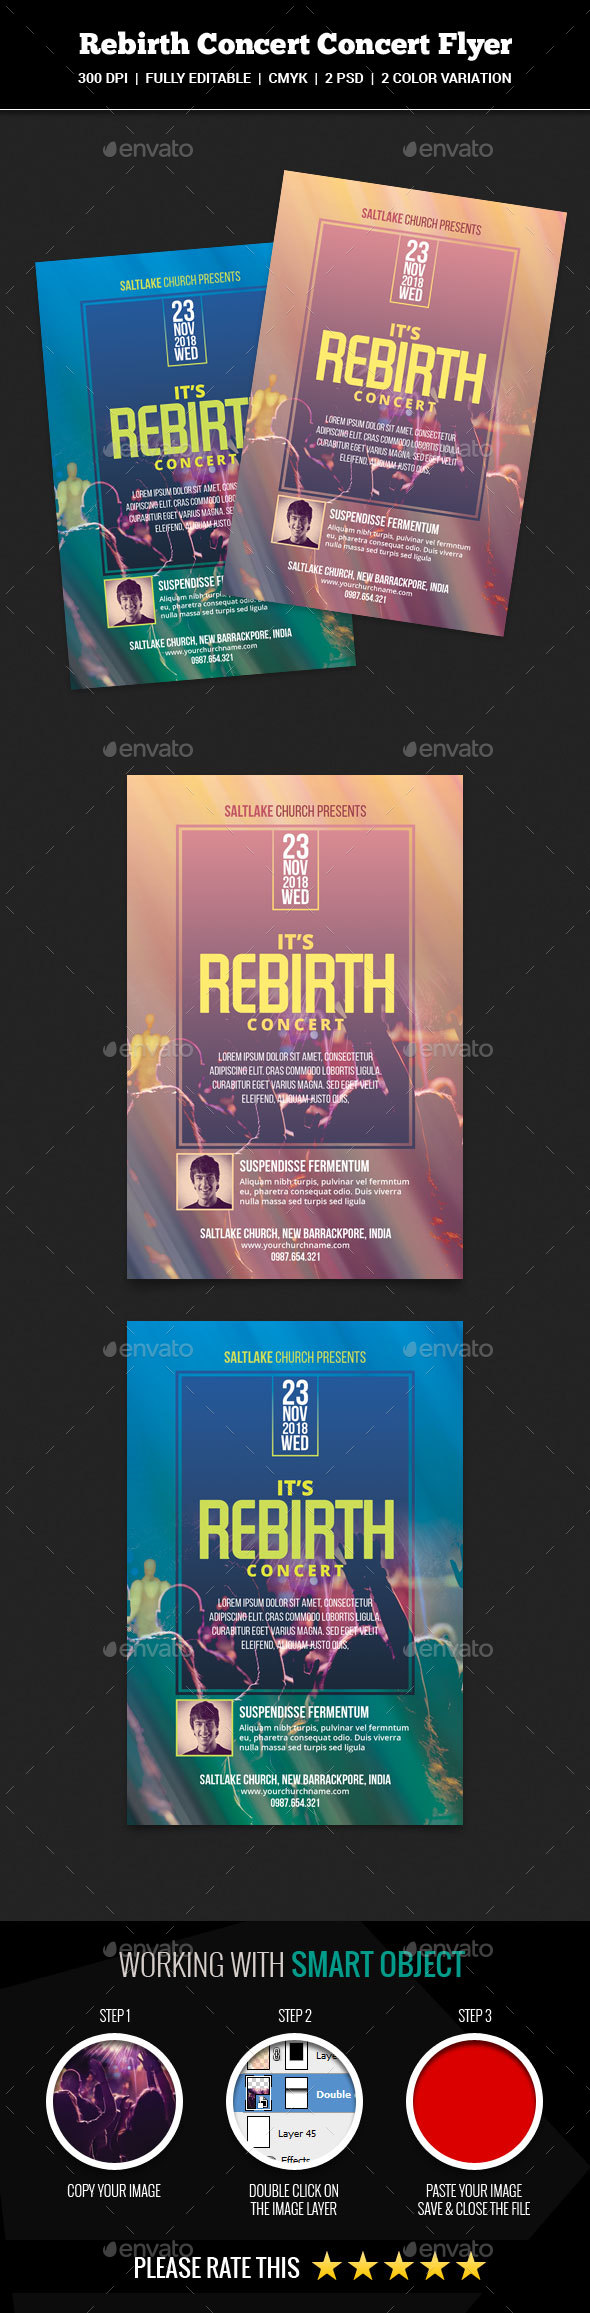 Rebirth Concert Flyer Template - Church Flyers